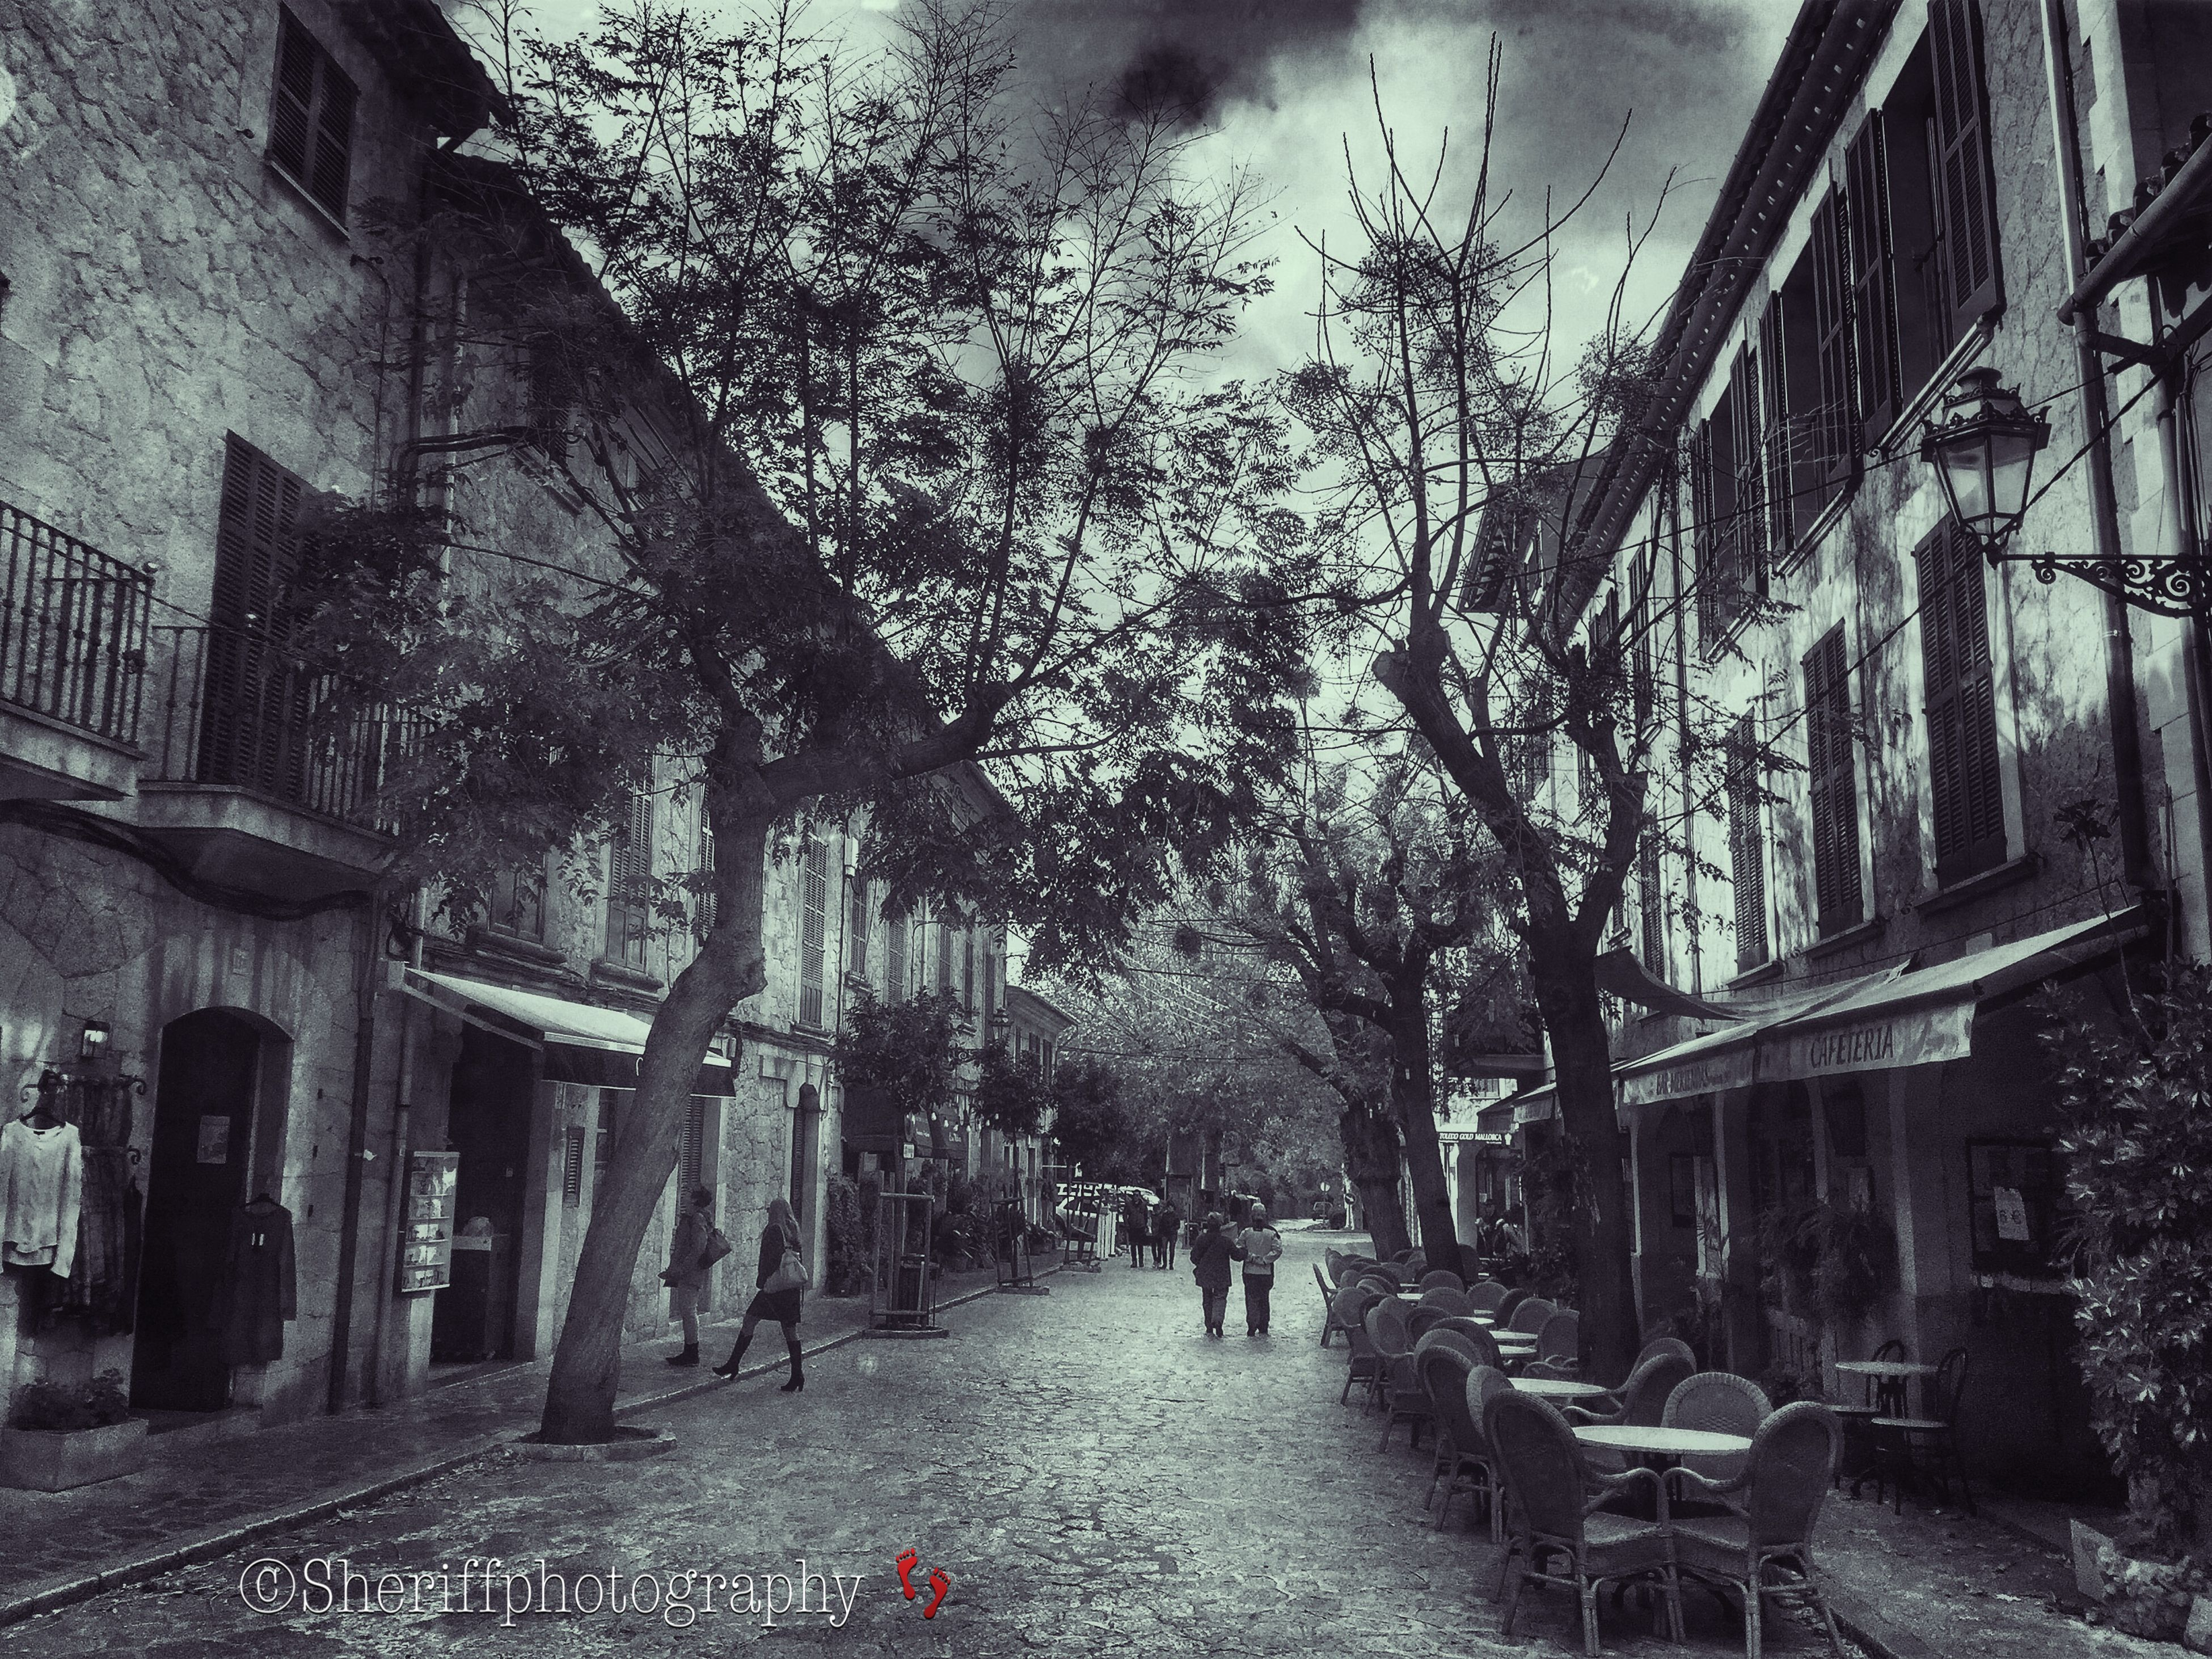 architecture, building exterior, built structure, the way forward, residential building, house, residential structure, building, alley, street, diminishing perspective, day, city, narrow, tree, outdoors, vanishing point, no people, incidental people, transportation